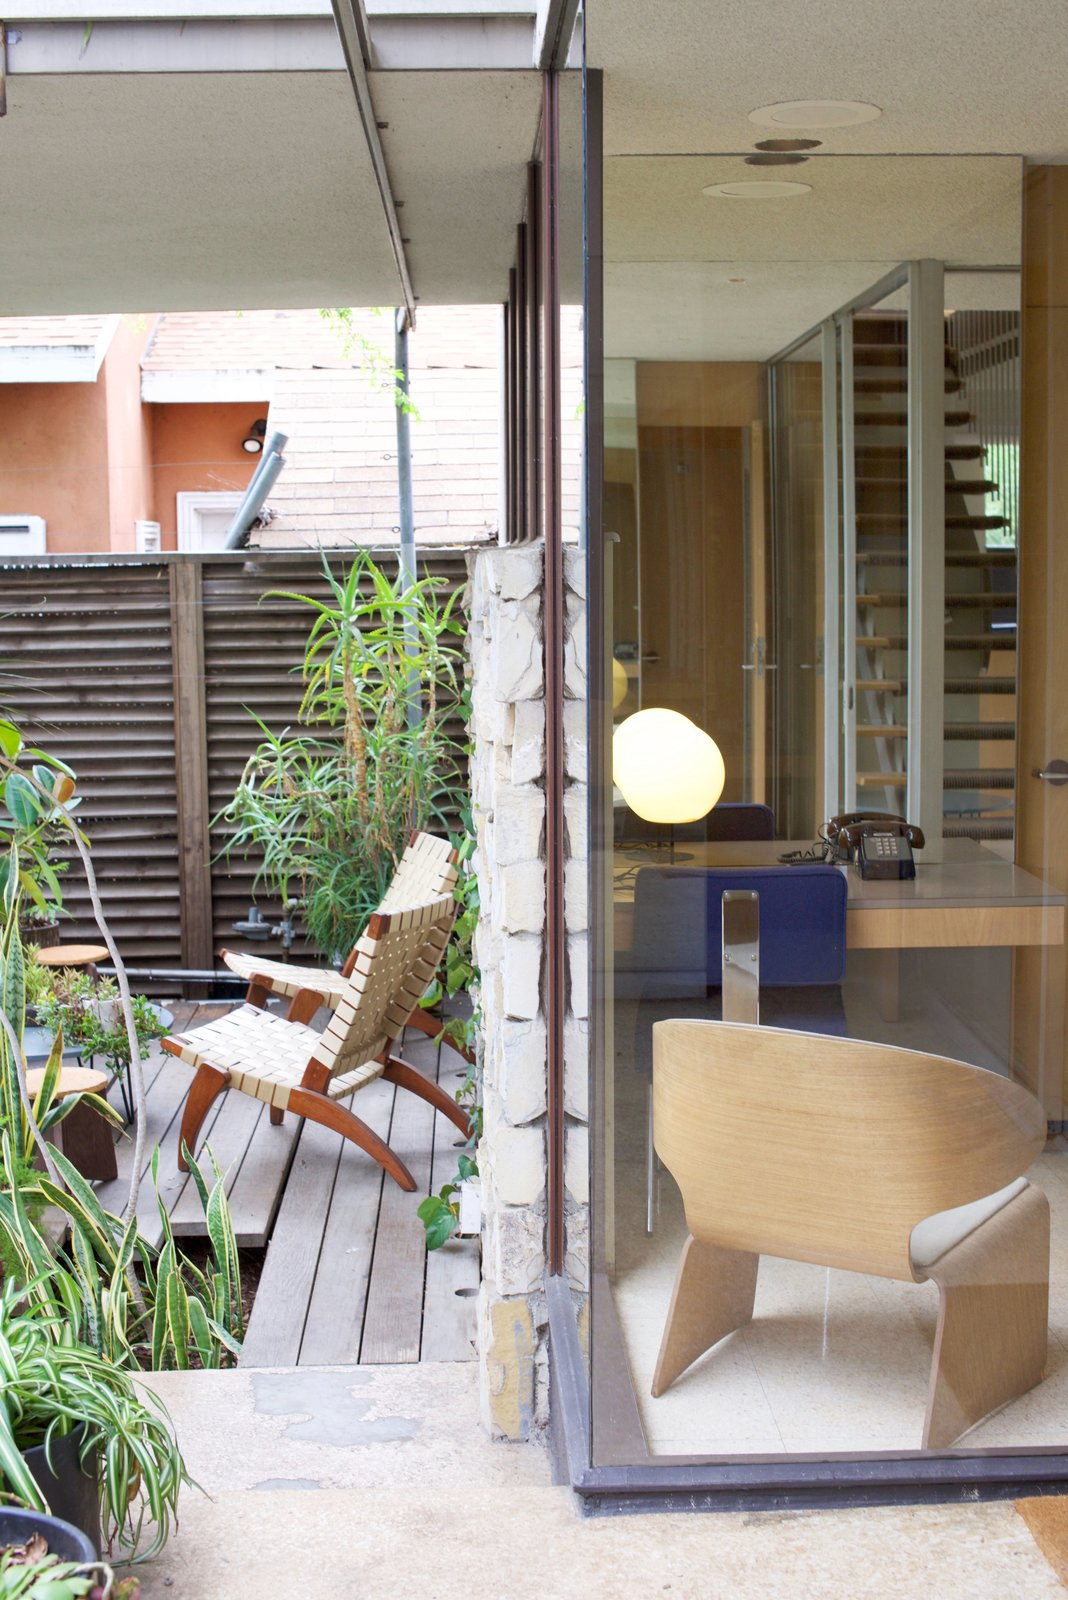 Because the residence endured through multiple lives, it portrays three different stages of Neutra's work, each of which is reflected through characteristic details. It's a truly special experience to be able to see the evolution of an architect's work illustrated throughout a living masterpiece.  Photo 6 of 11 in Iconic Perspectives: Richard Neutra's VDL Studio & Residences